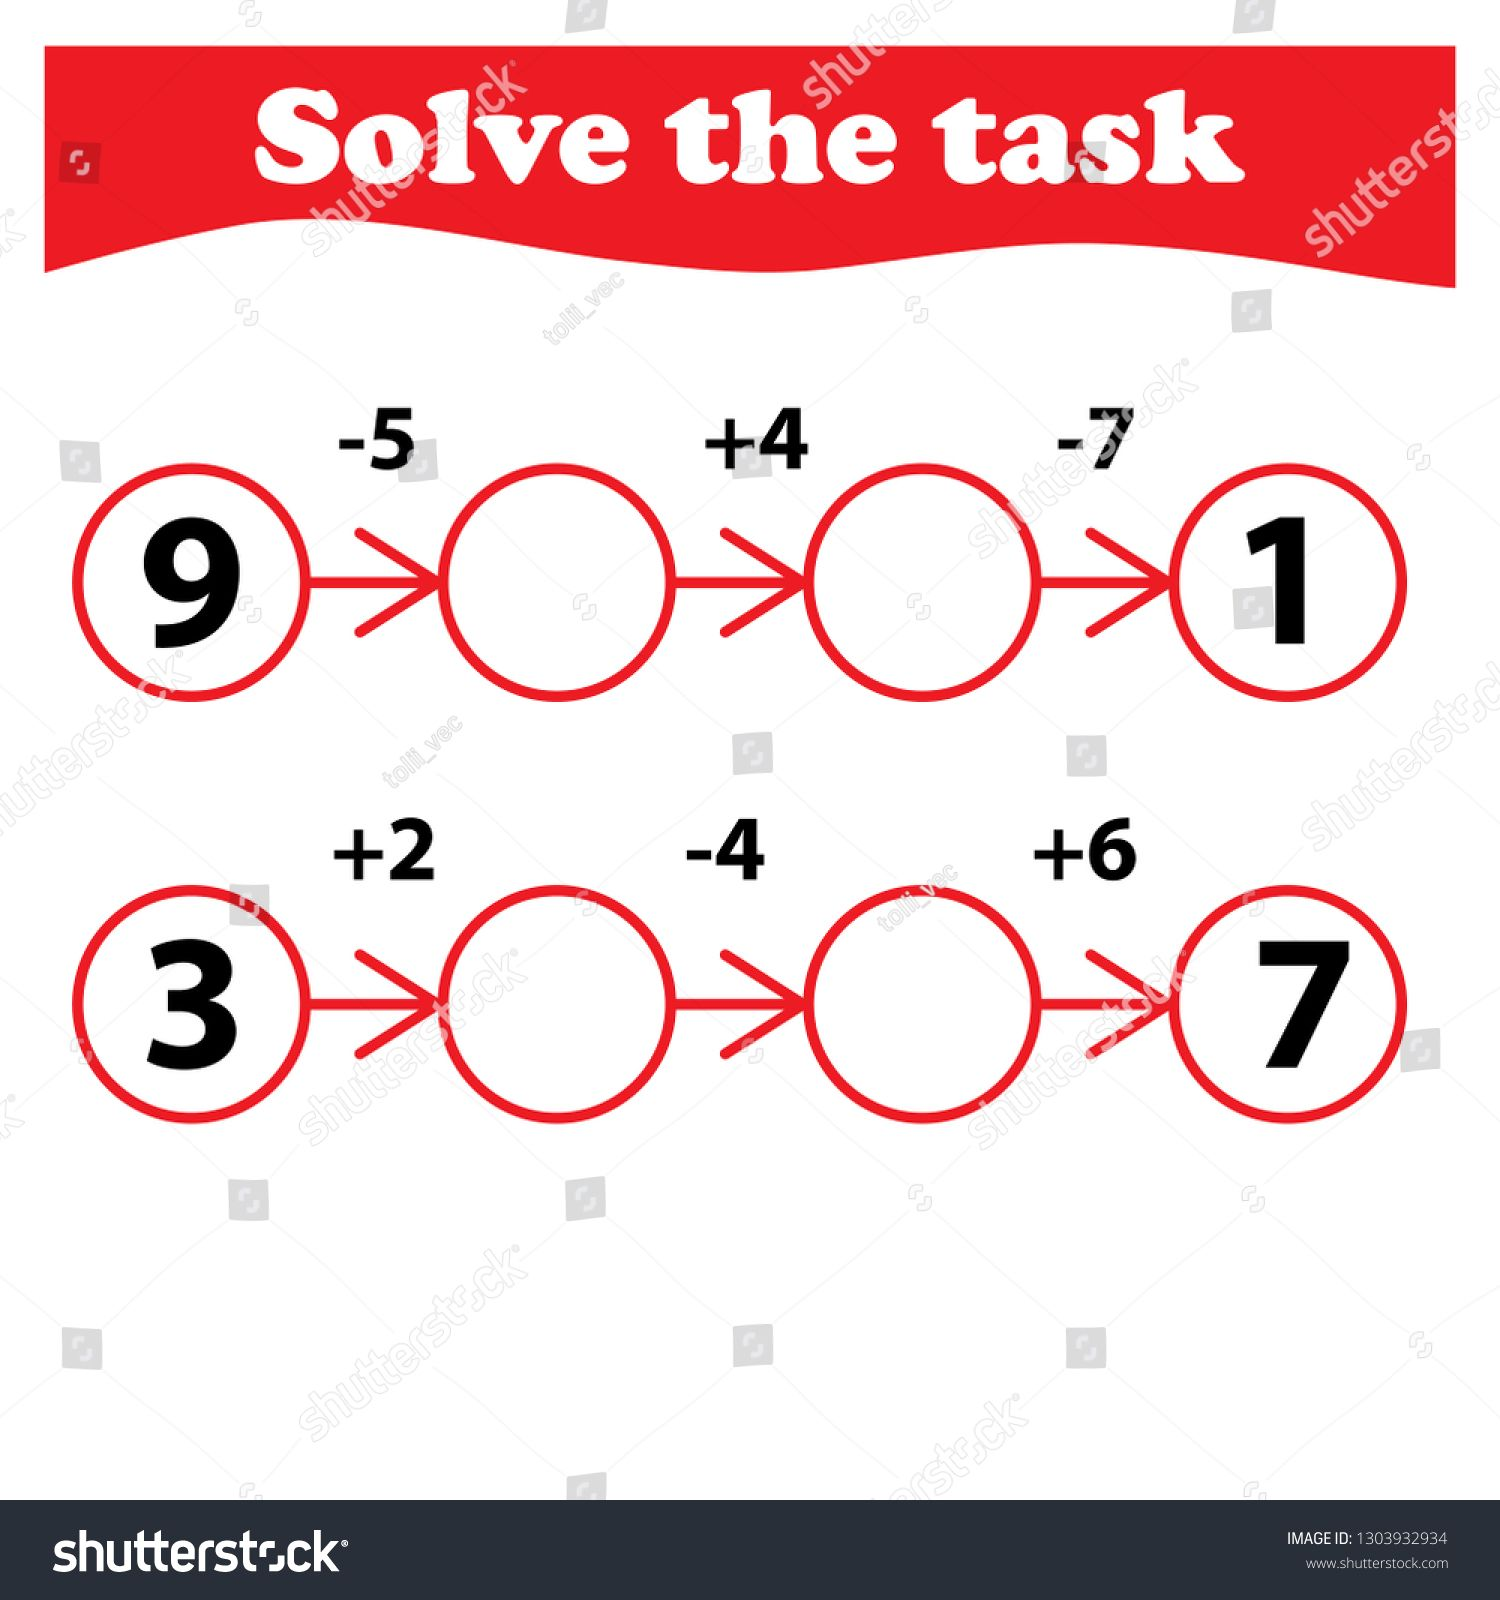 Worksheet Mathematical Puzzle Game Learning Mathematics Tasks For Addition For Preschool Children W Learning Mathematics Mathematics Worksheets Mathematics [ 1600 x 1500 Pixel ]